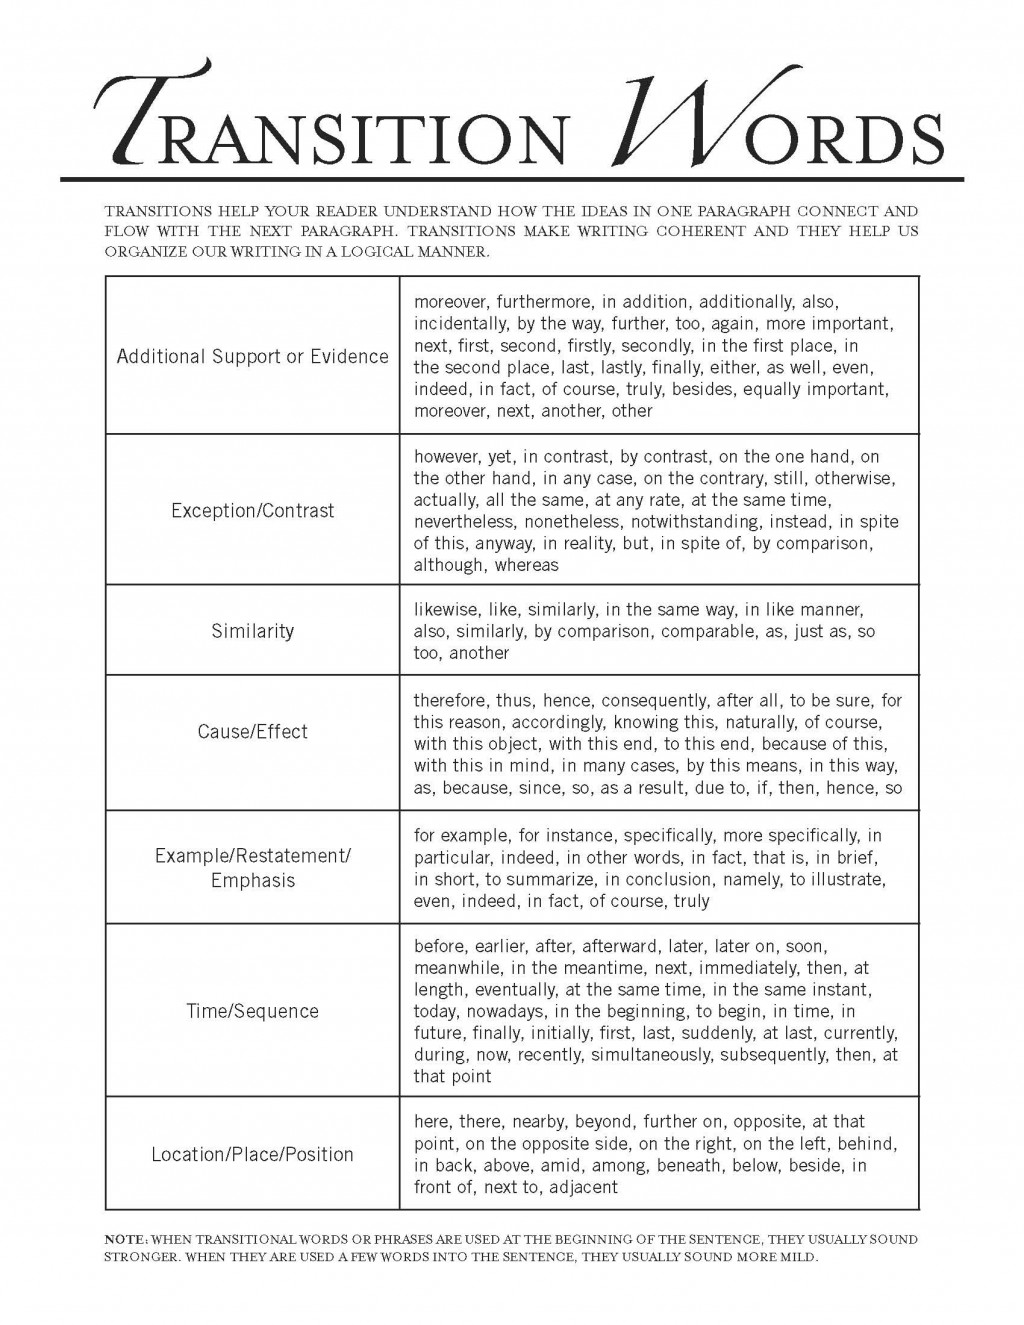 017 Another Word For Conclusion An Essay Example One Essays This Ridiculous Paragraph By Unc Words To Start In Persuasive Transitionsl1 P Off Sentence Argumentative The First Wonderful Large